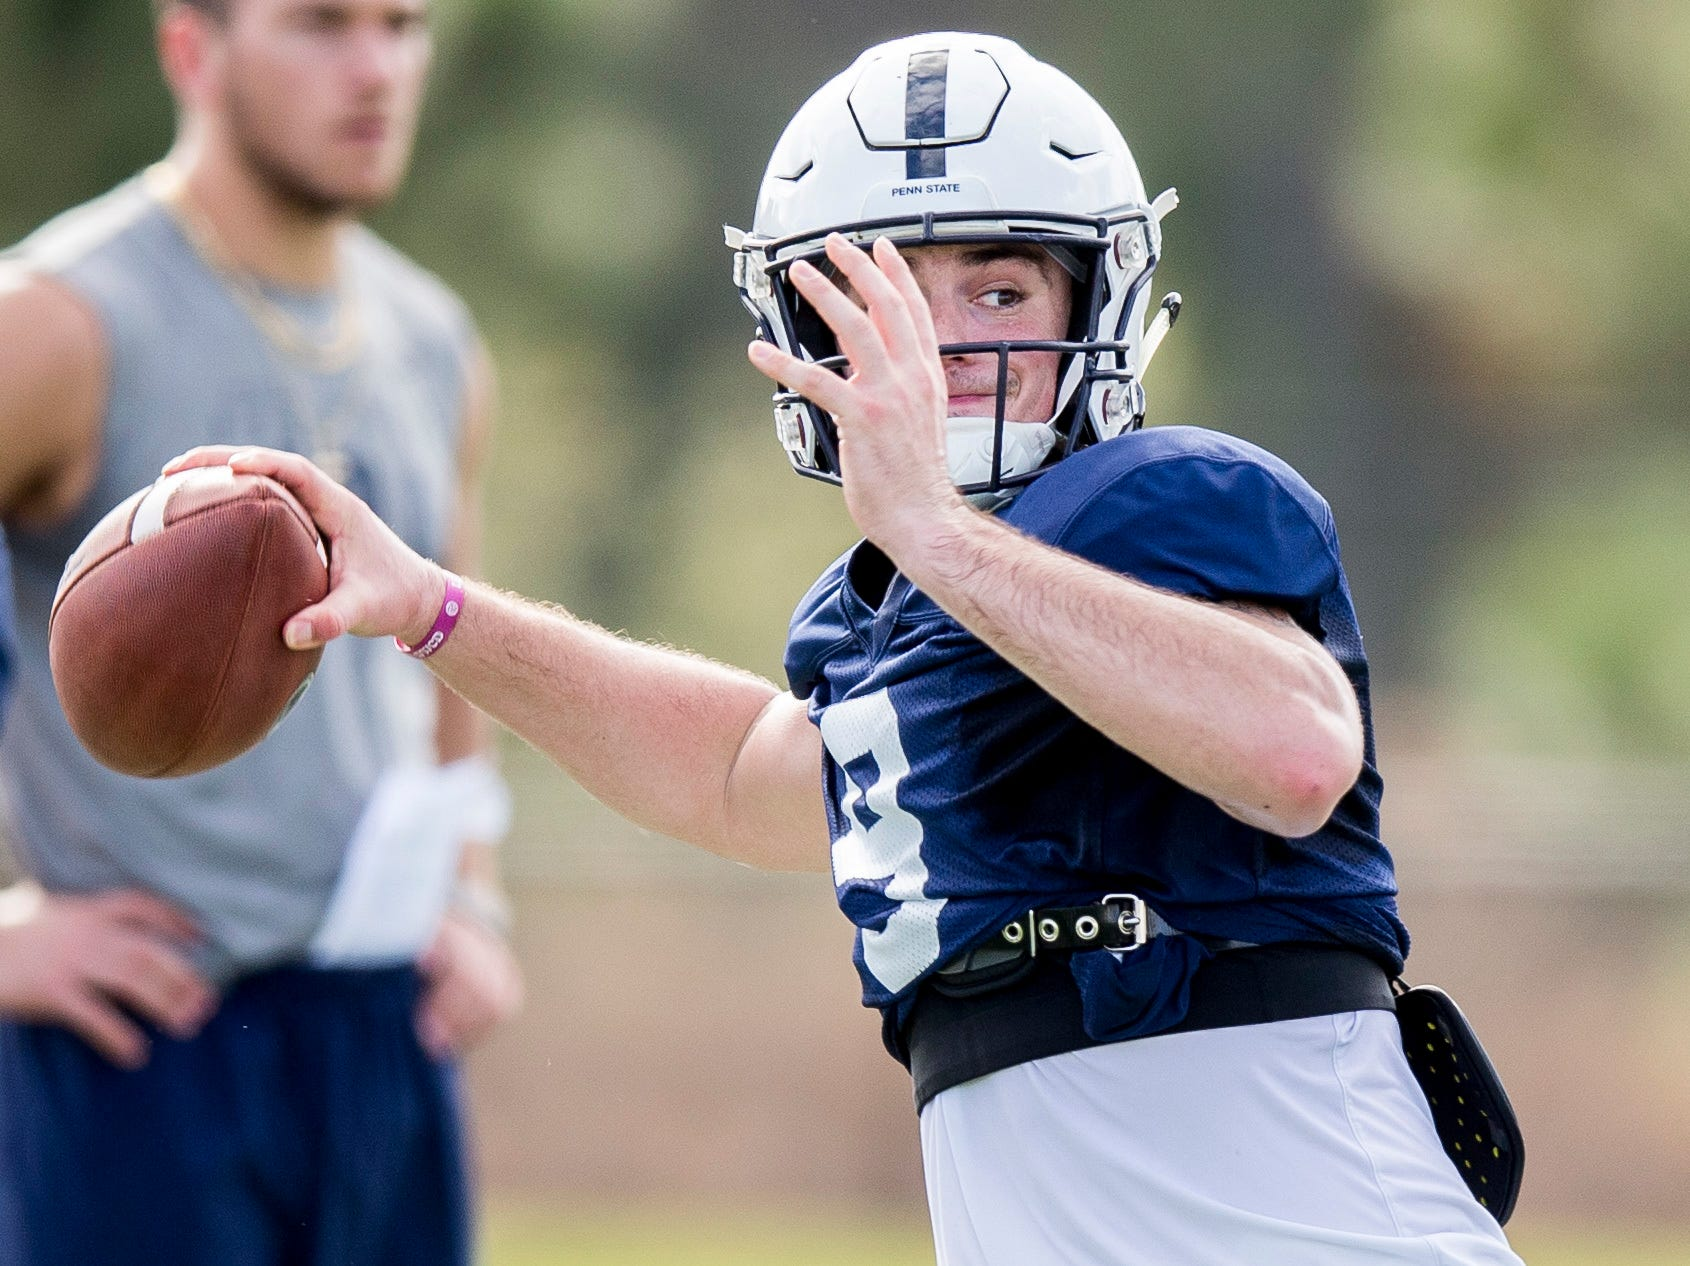 Penn State quarterback Trace McSorley throws during practice for the Citrus Bowl NCAA college football game on Saturday, Dec. 29, 2018, in Orlando, Fla. (Joe Hermitt/The Patriot-News via AP)